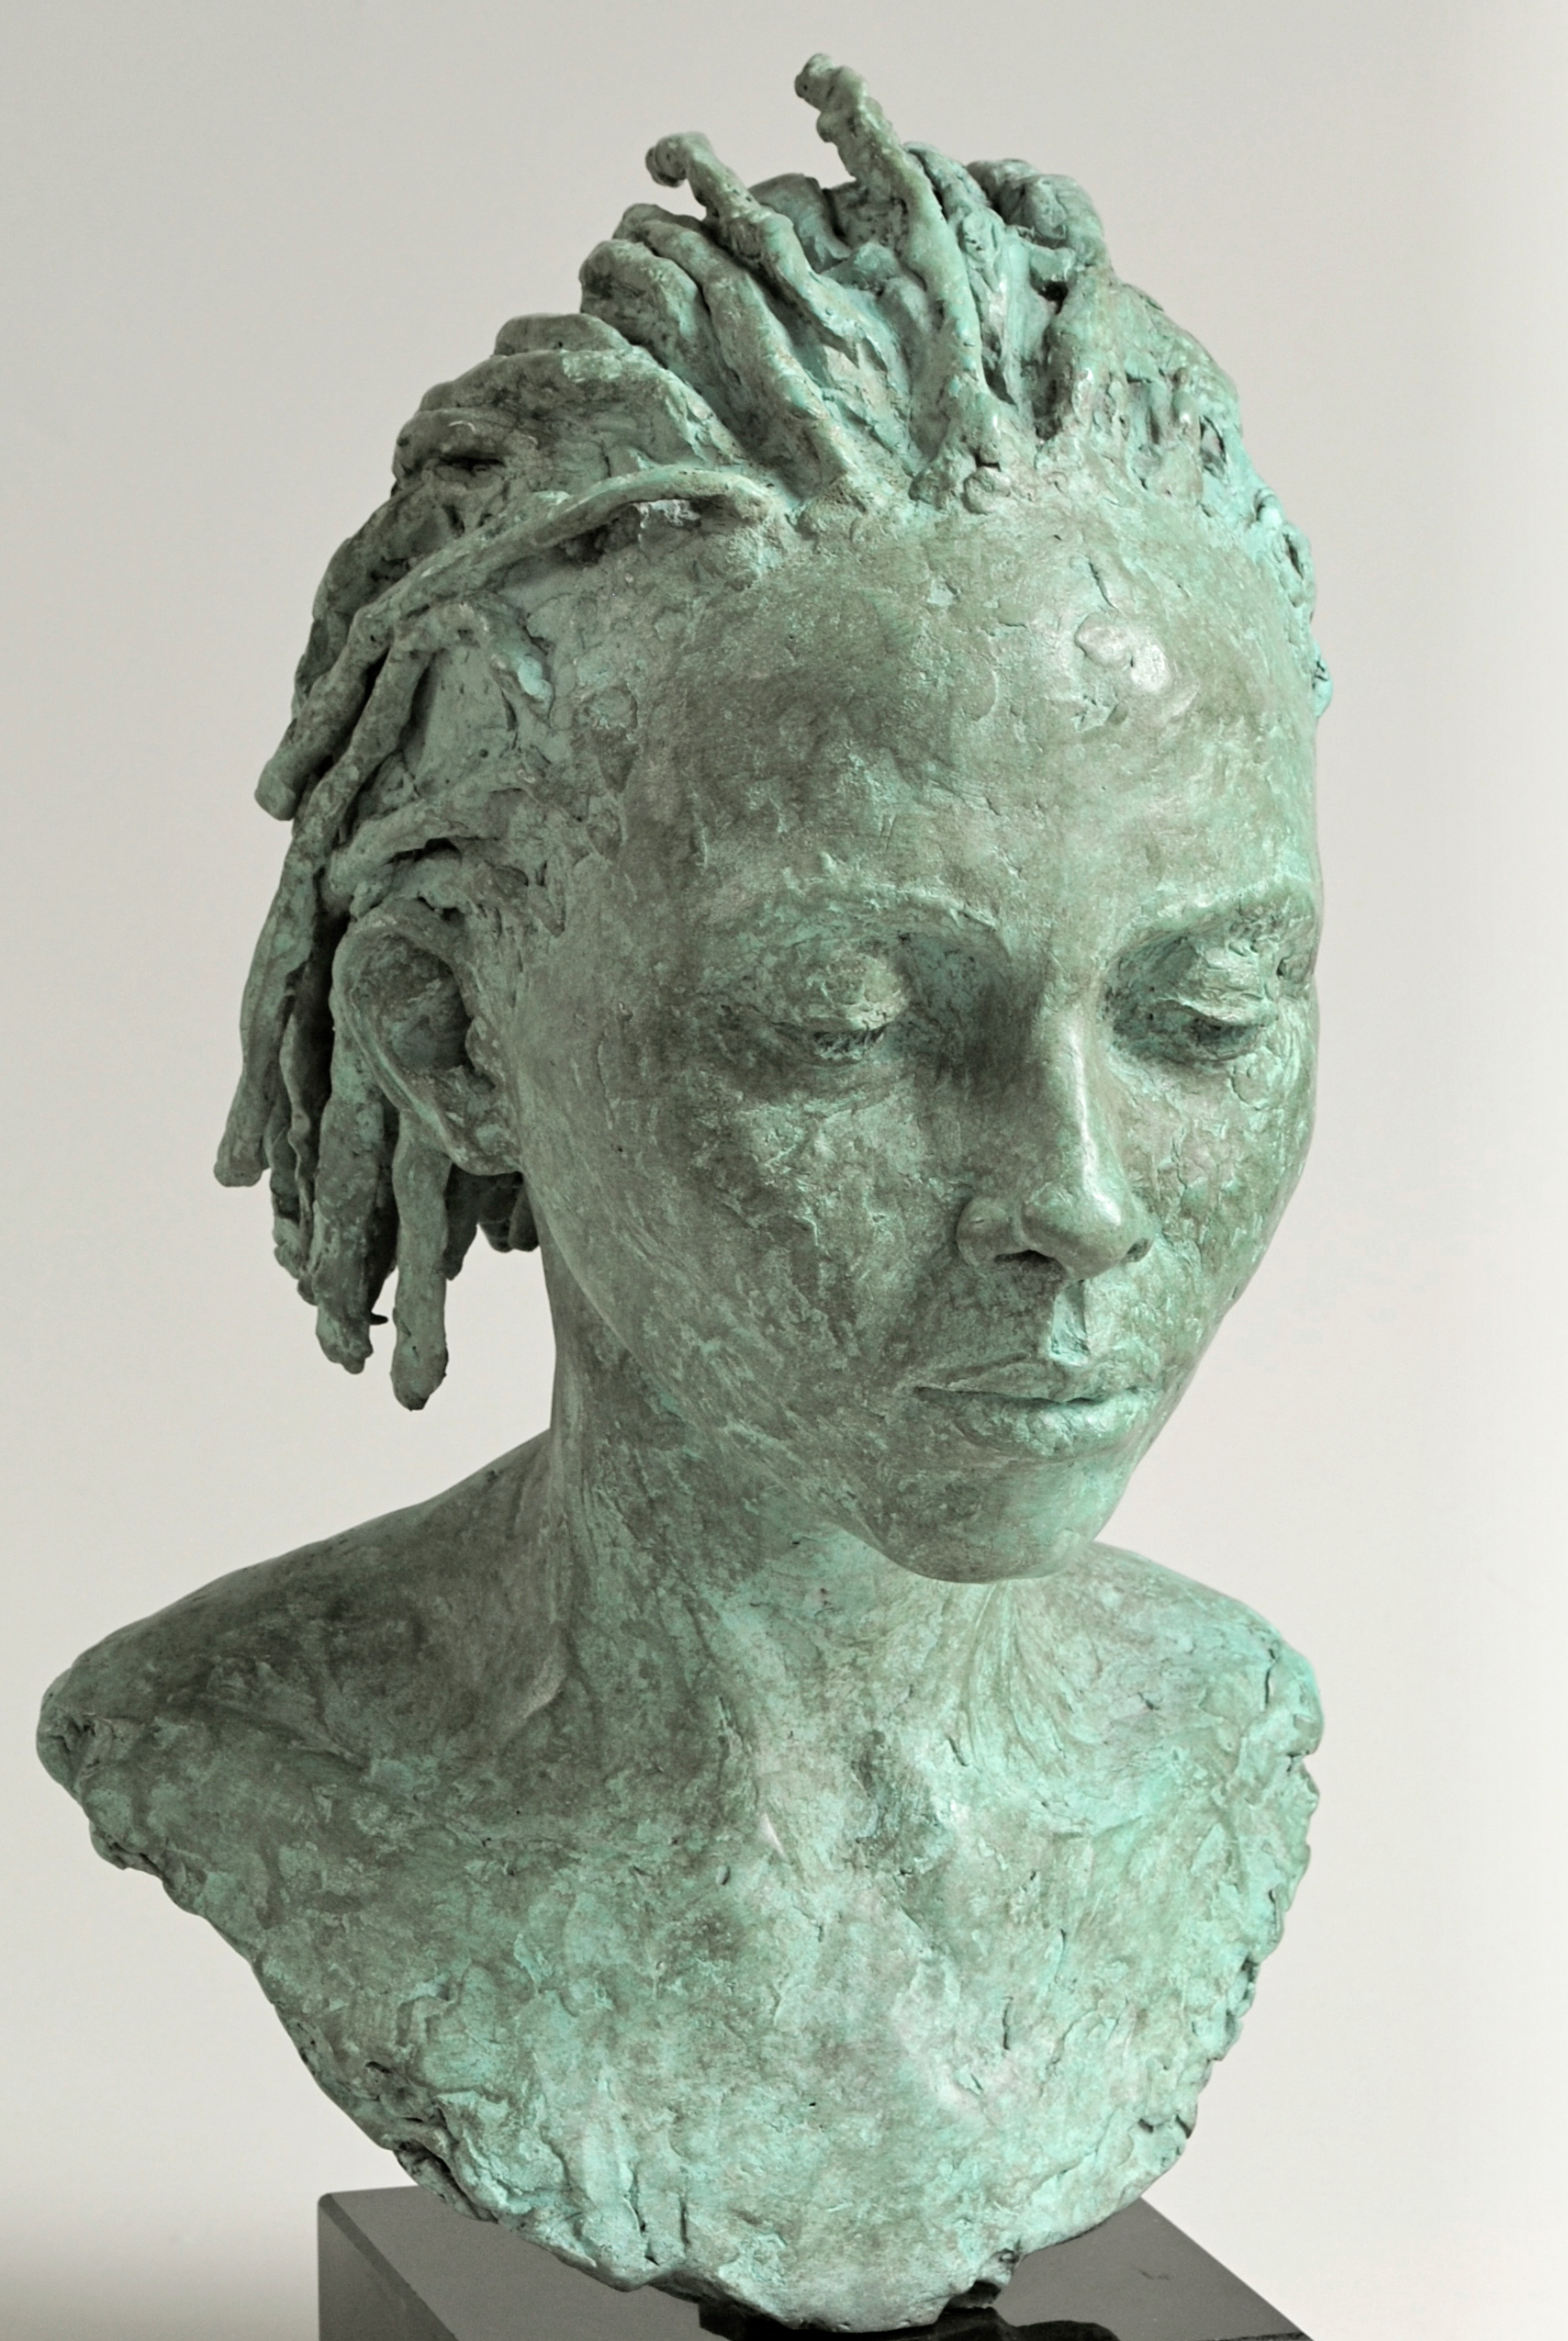 Mercy - sculpture by Hazel Reeves